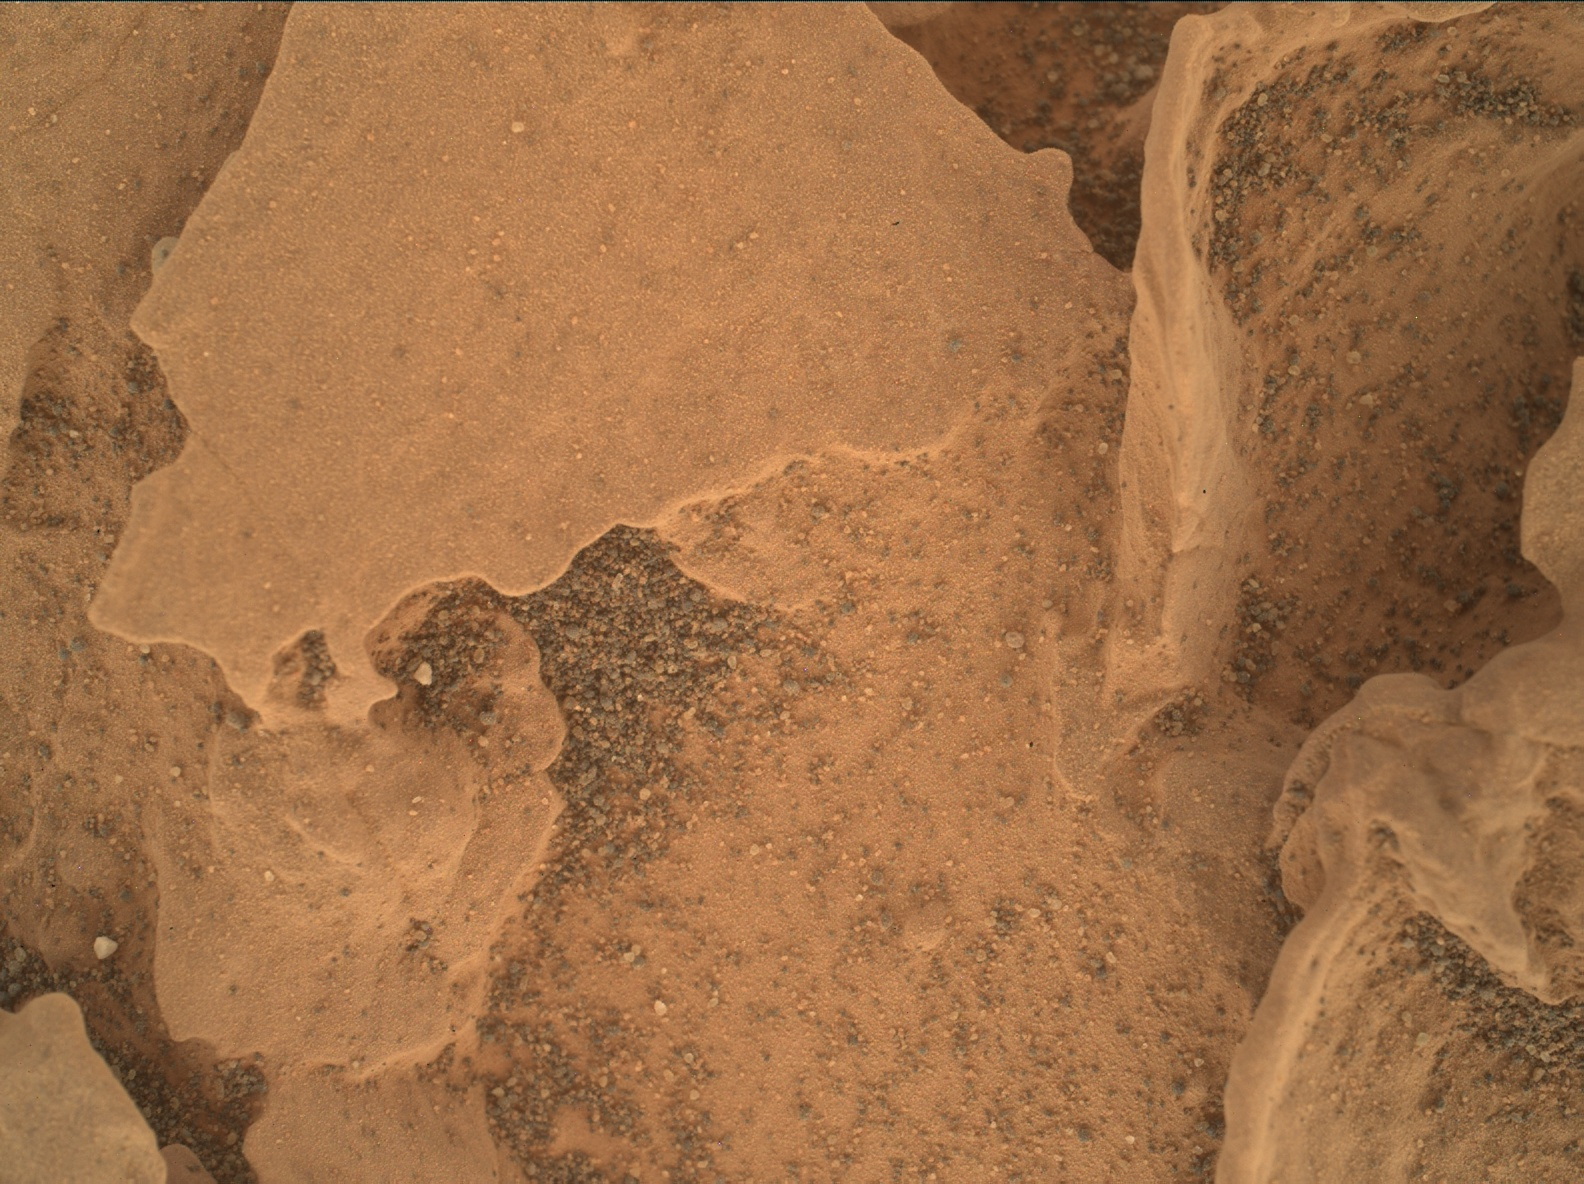 Nasa's Mars rover Curiosity acquired this image using its Mars Hand Lens Imager (MAHLI) on Sol 1800